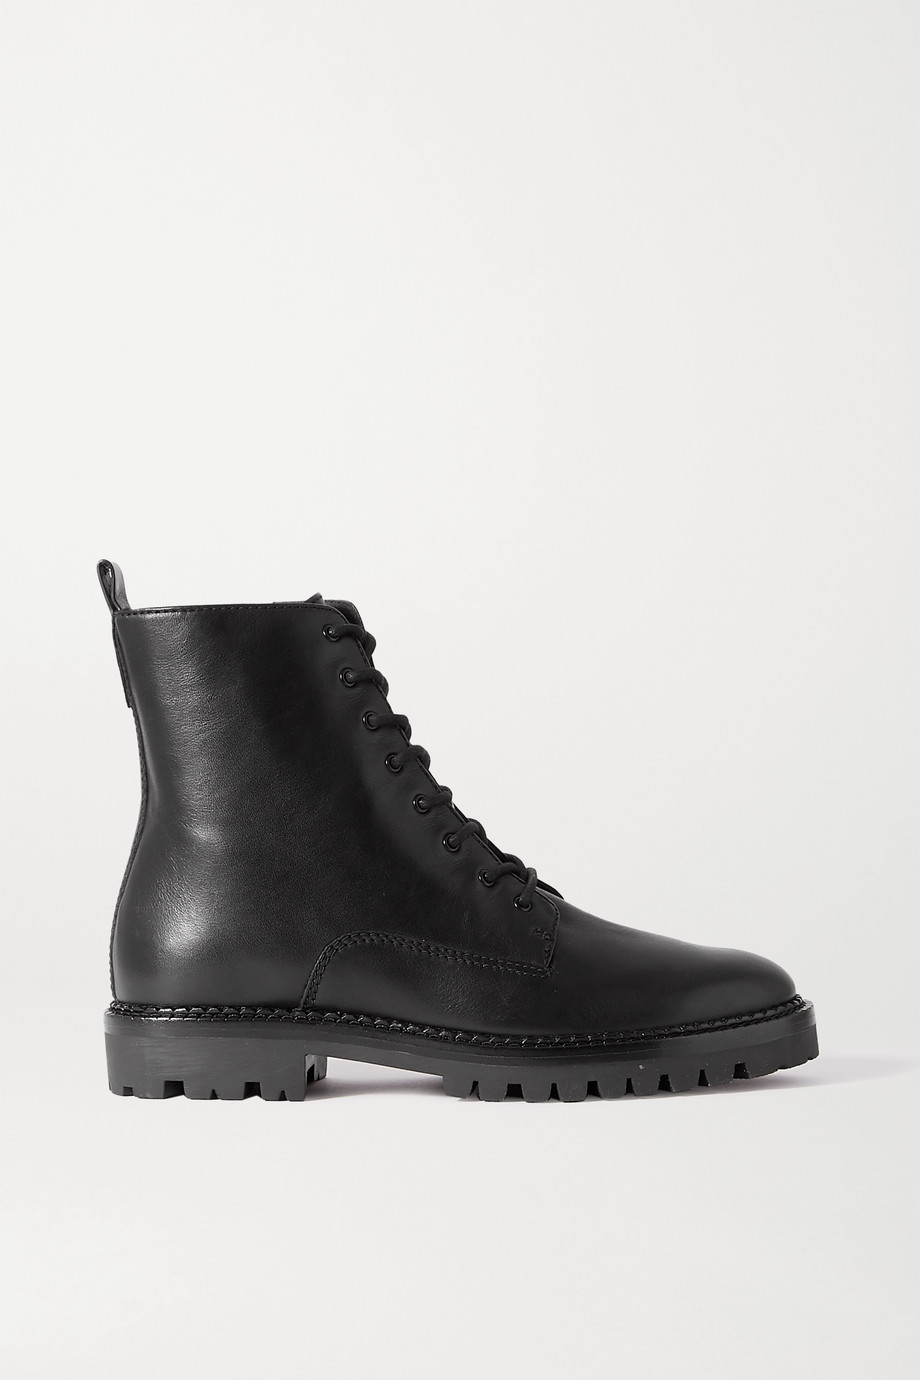 Vince Cabria Lug leather ankle boots